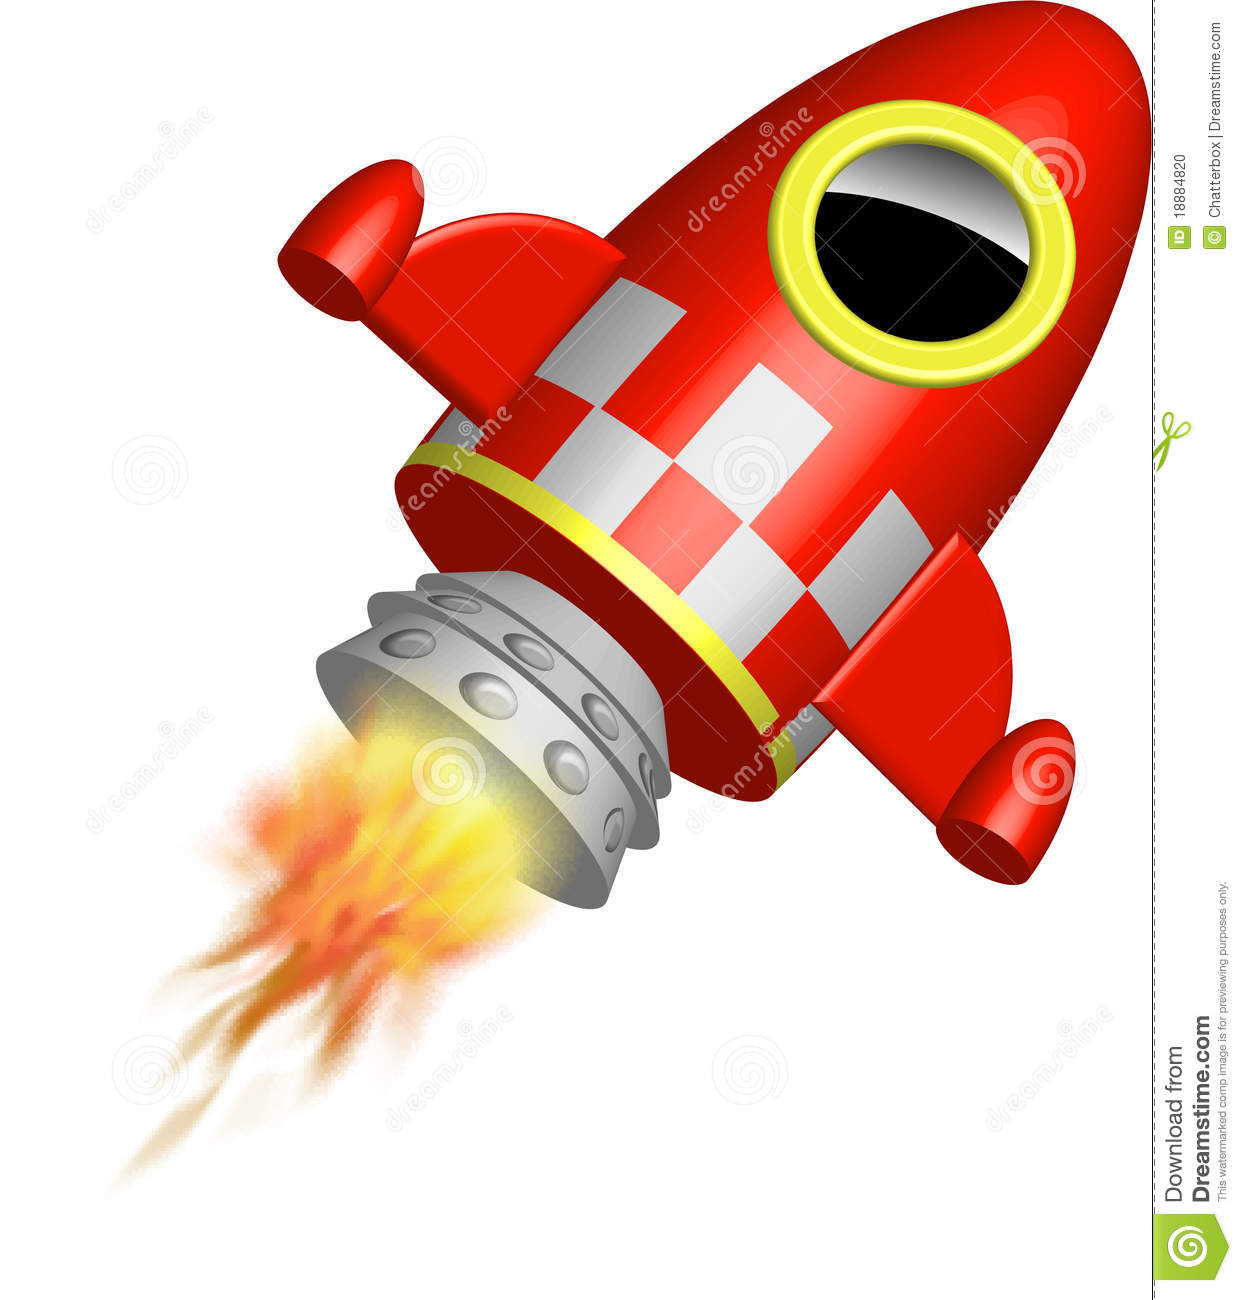 red little rocket ship with flames stock photo image language arts clip art yahoo free english language arts clip art